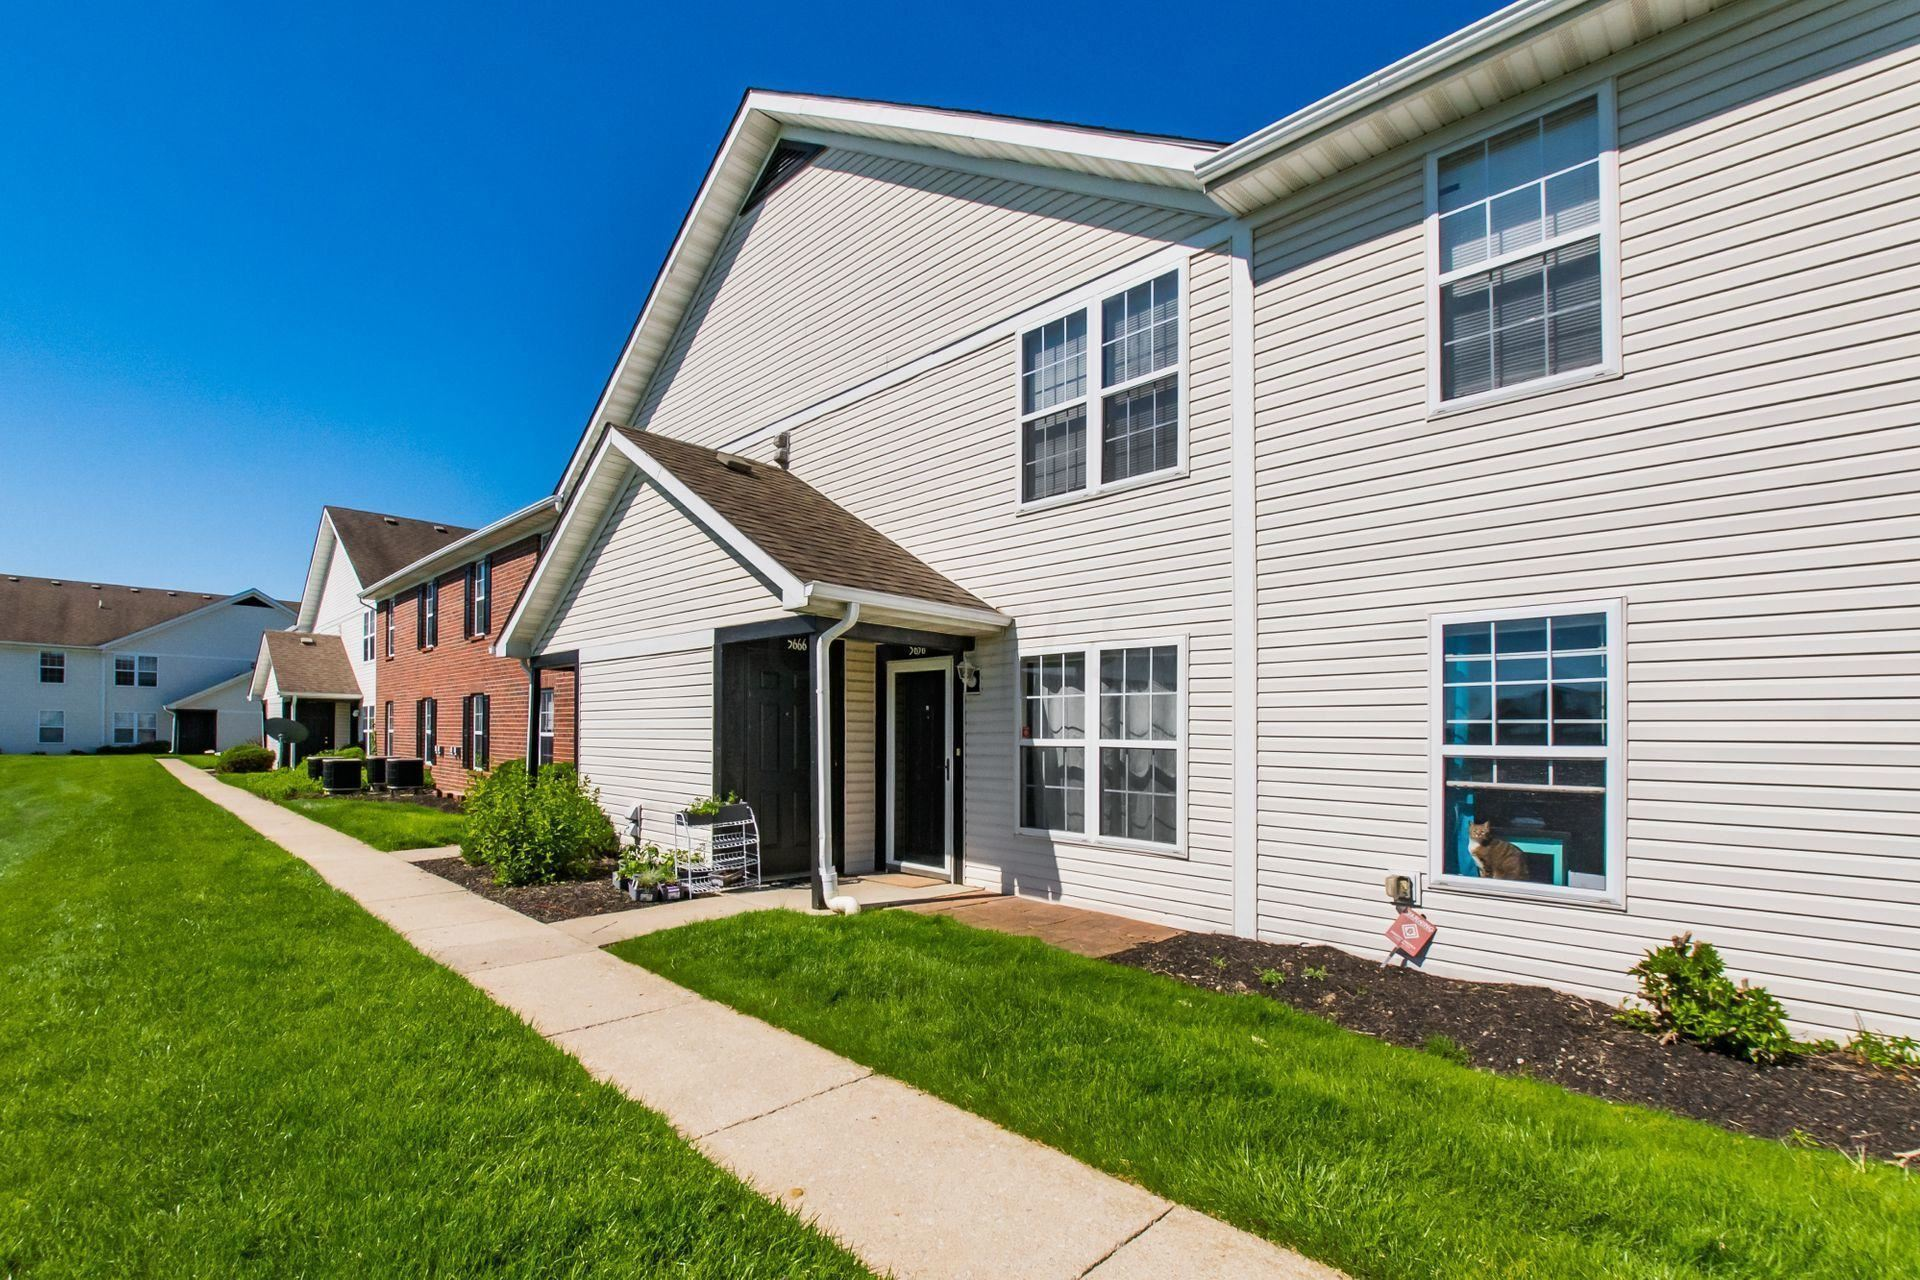 Photo of 5656 Cypress Chase, Columbus, OH 43228 (MLS # 221015927)